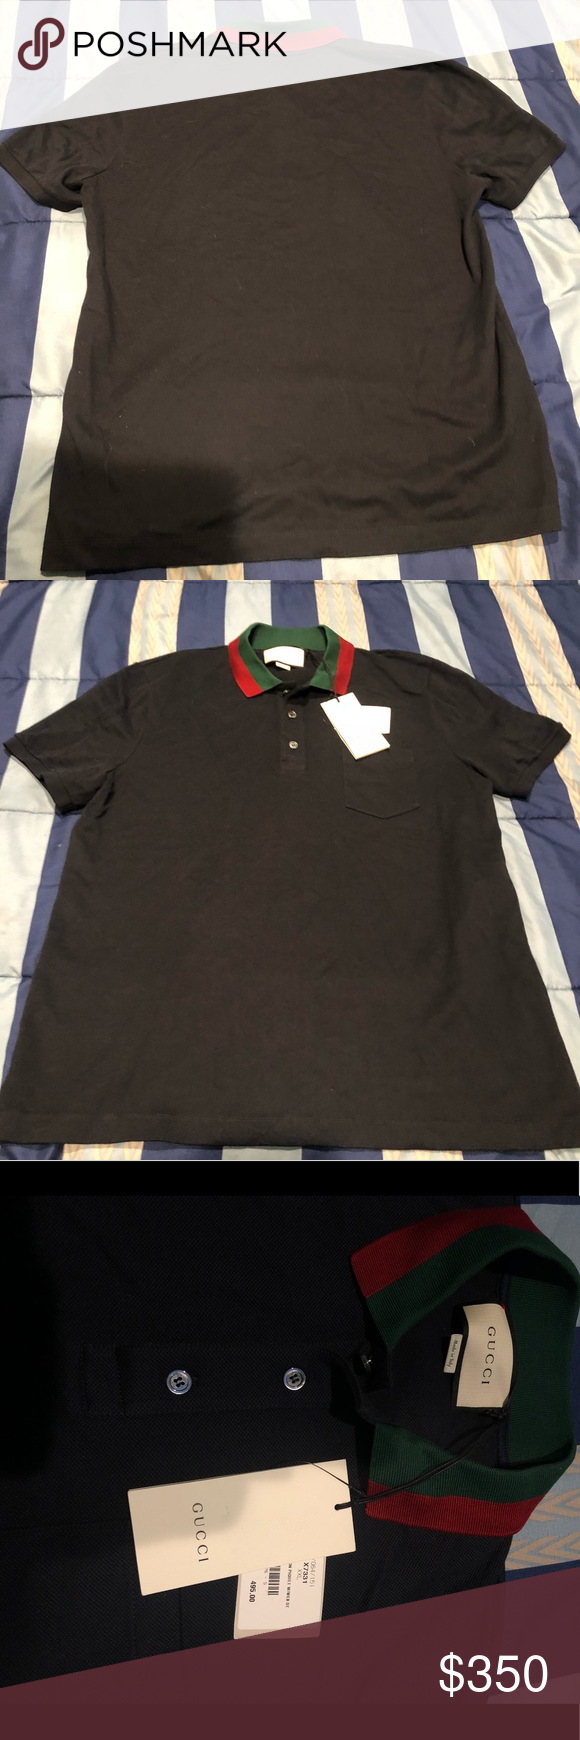 3fd88c72 Gucci black polo with red and green collar Black polo with red and green  collar Size XXL but fits as a L Authentic with tags Worn once Gucci Shirts  Polos